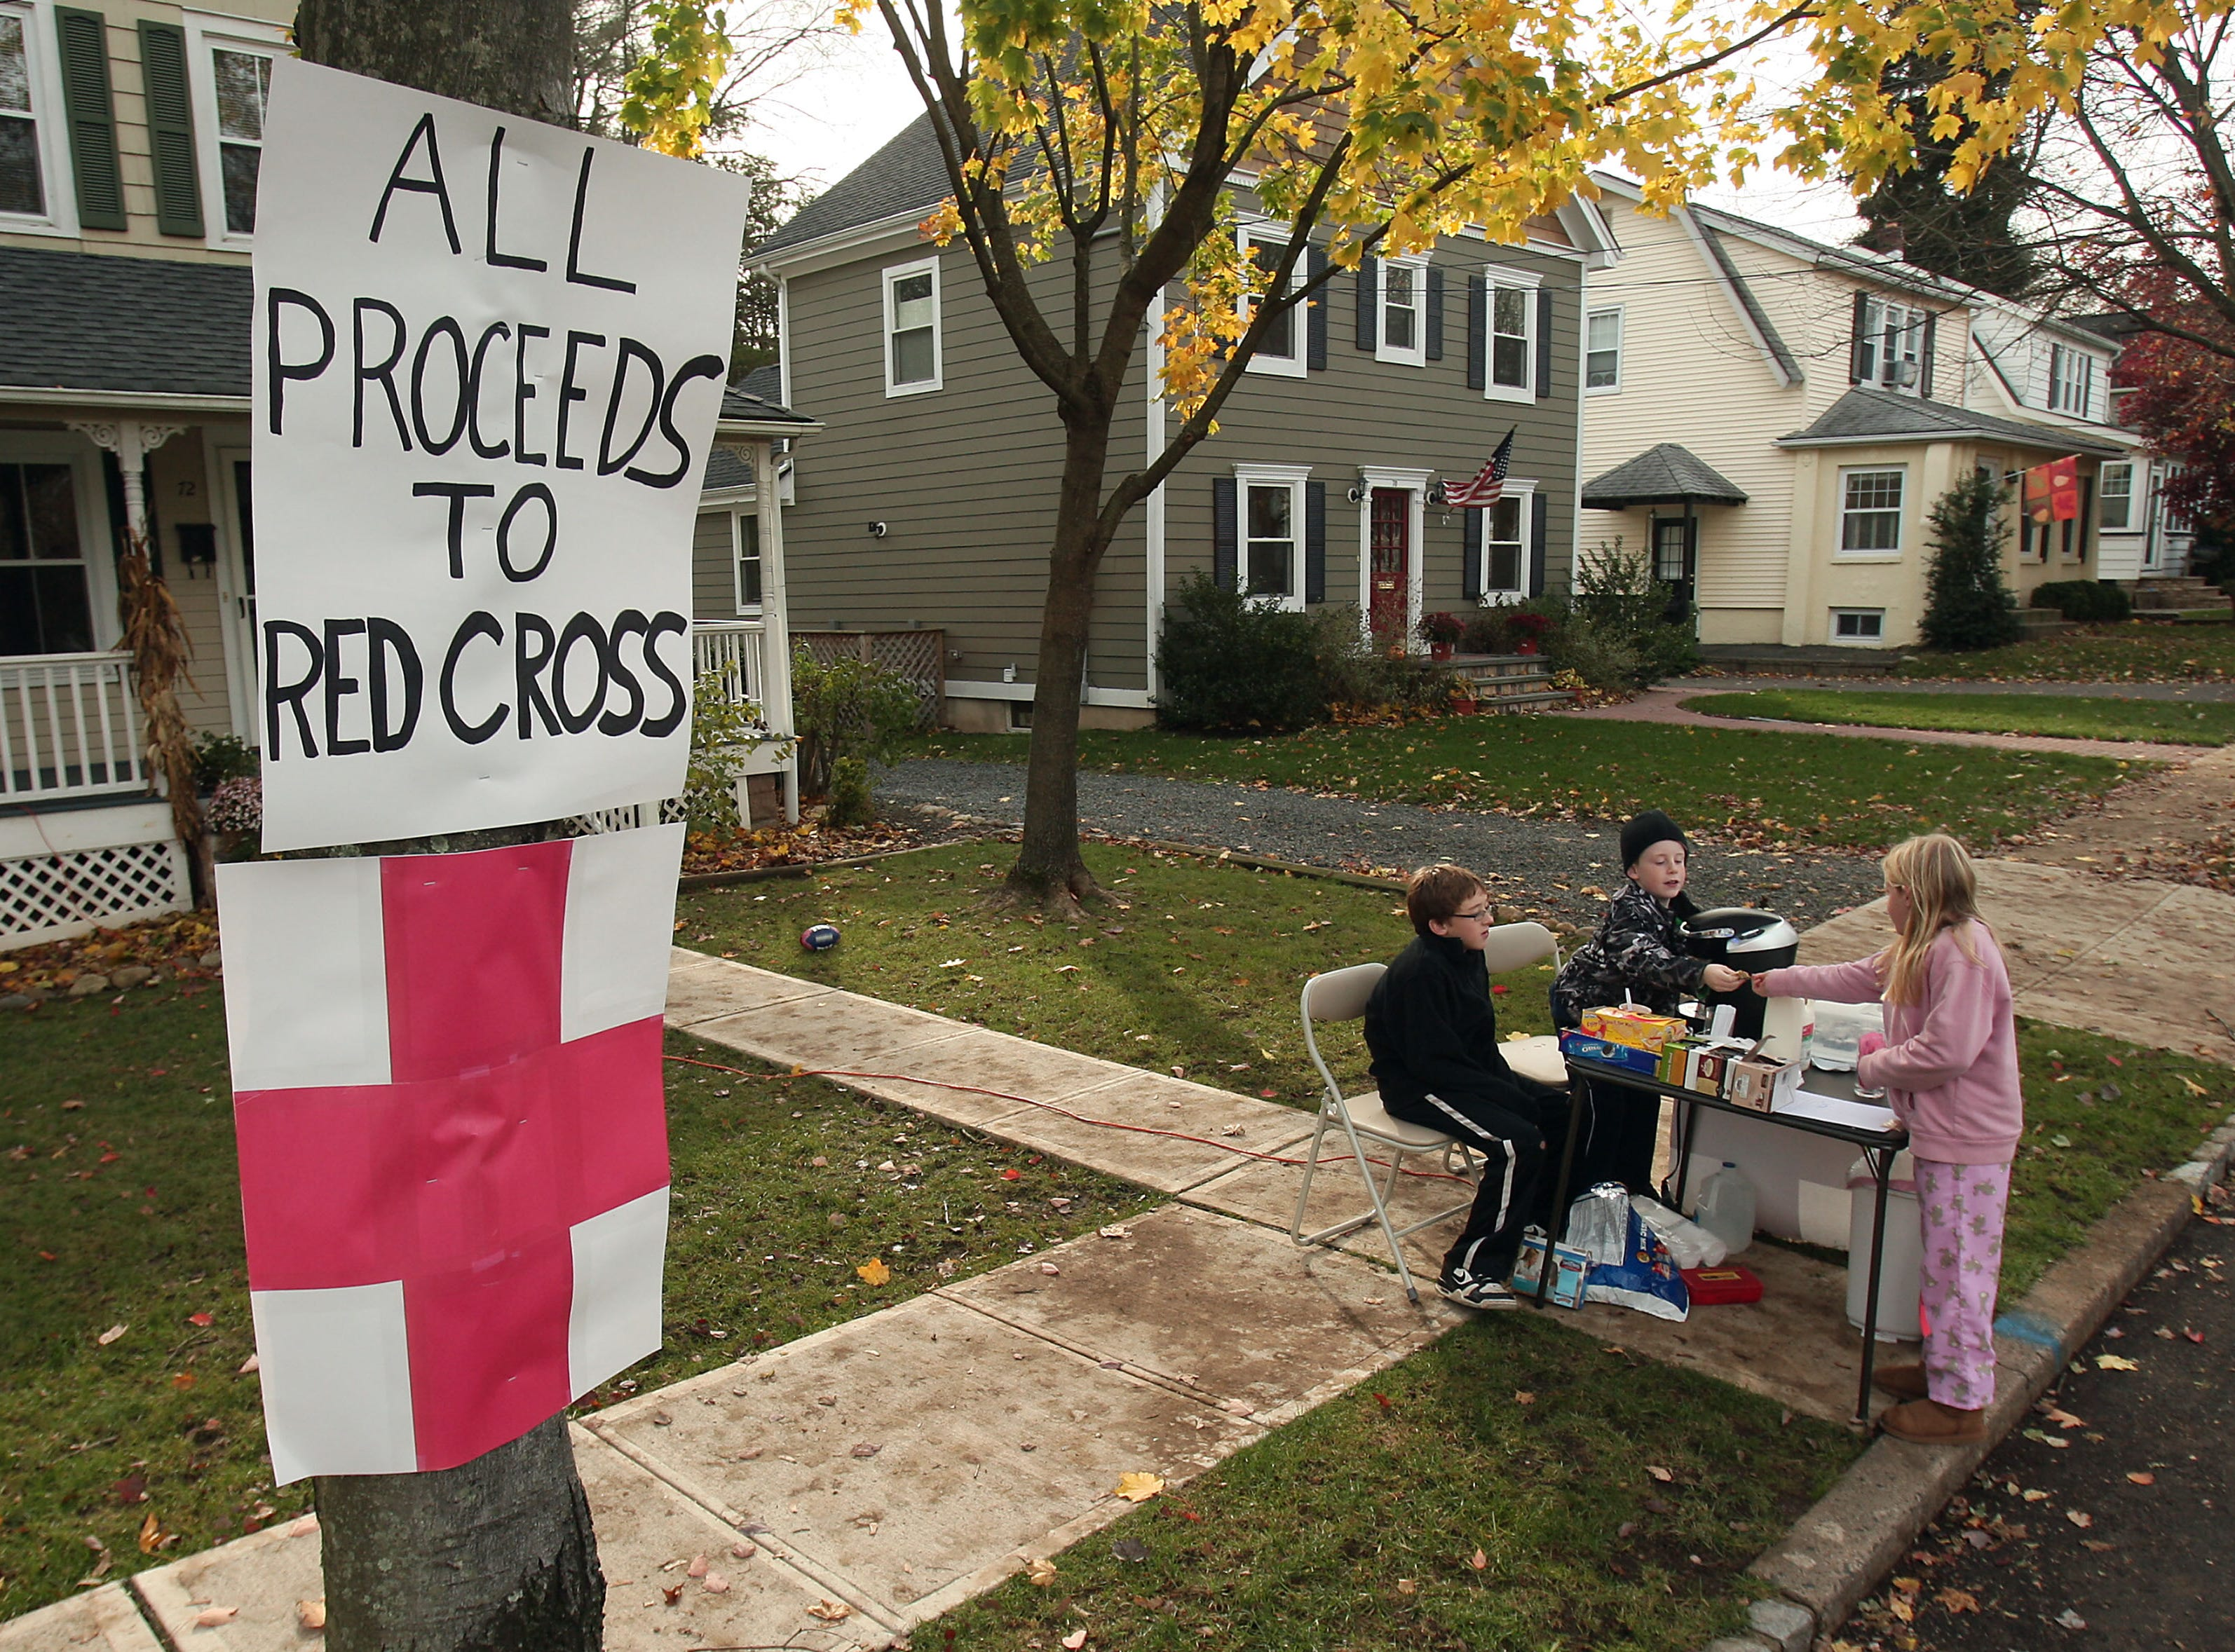 Chatham, NJ- November 1, 2012--9-year-old Hannah Leroux of Chatham, NJ makes a donation to Nick Meyer (11) and Jack Konrad (8) who are collecting proceeds for the Red Cross on Hedges Avenue as locals continue the recovery process after Hurricane Sandy devastated the eastern seaboard.